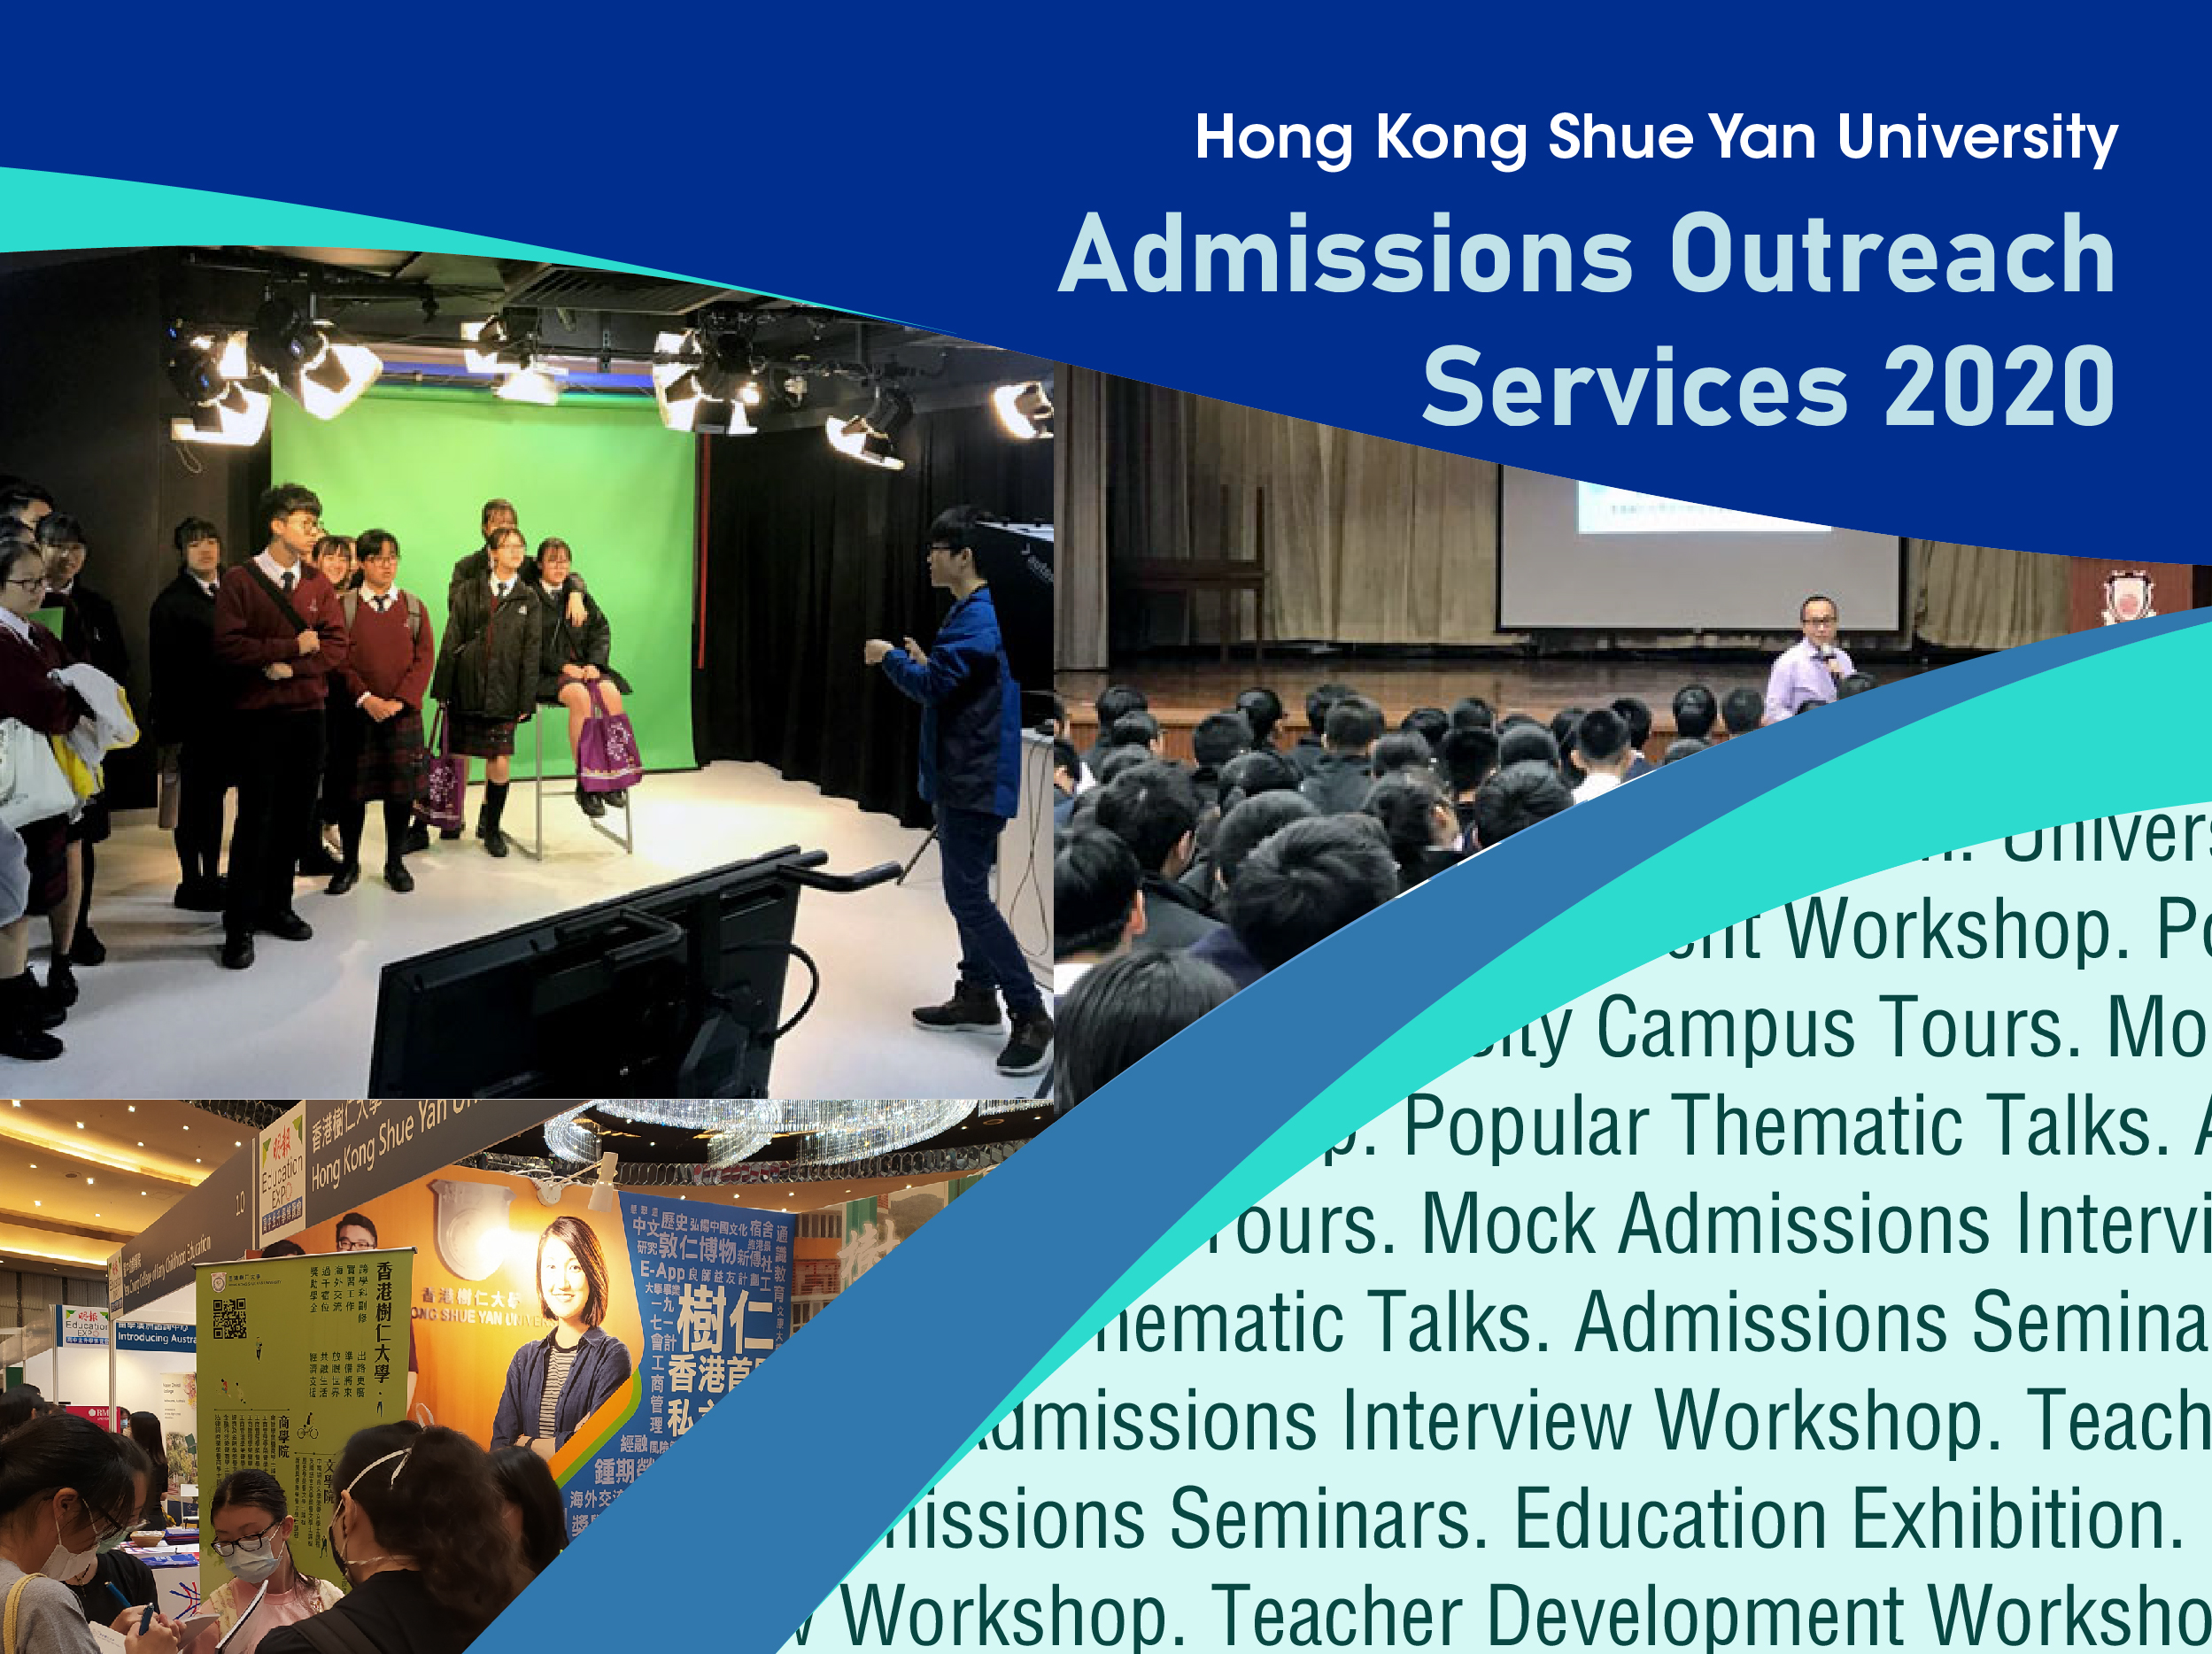 HKSYU Admissions Outreach Services 2020